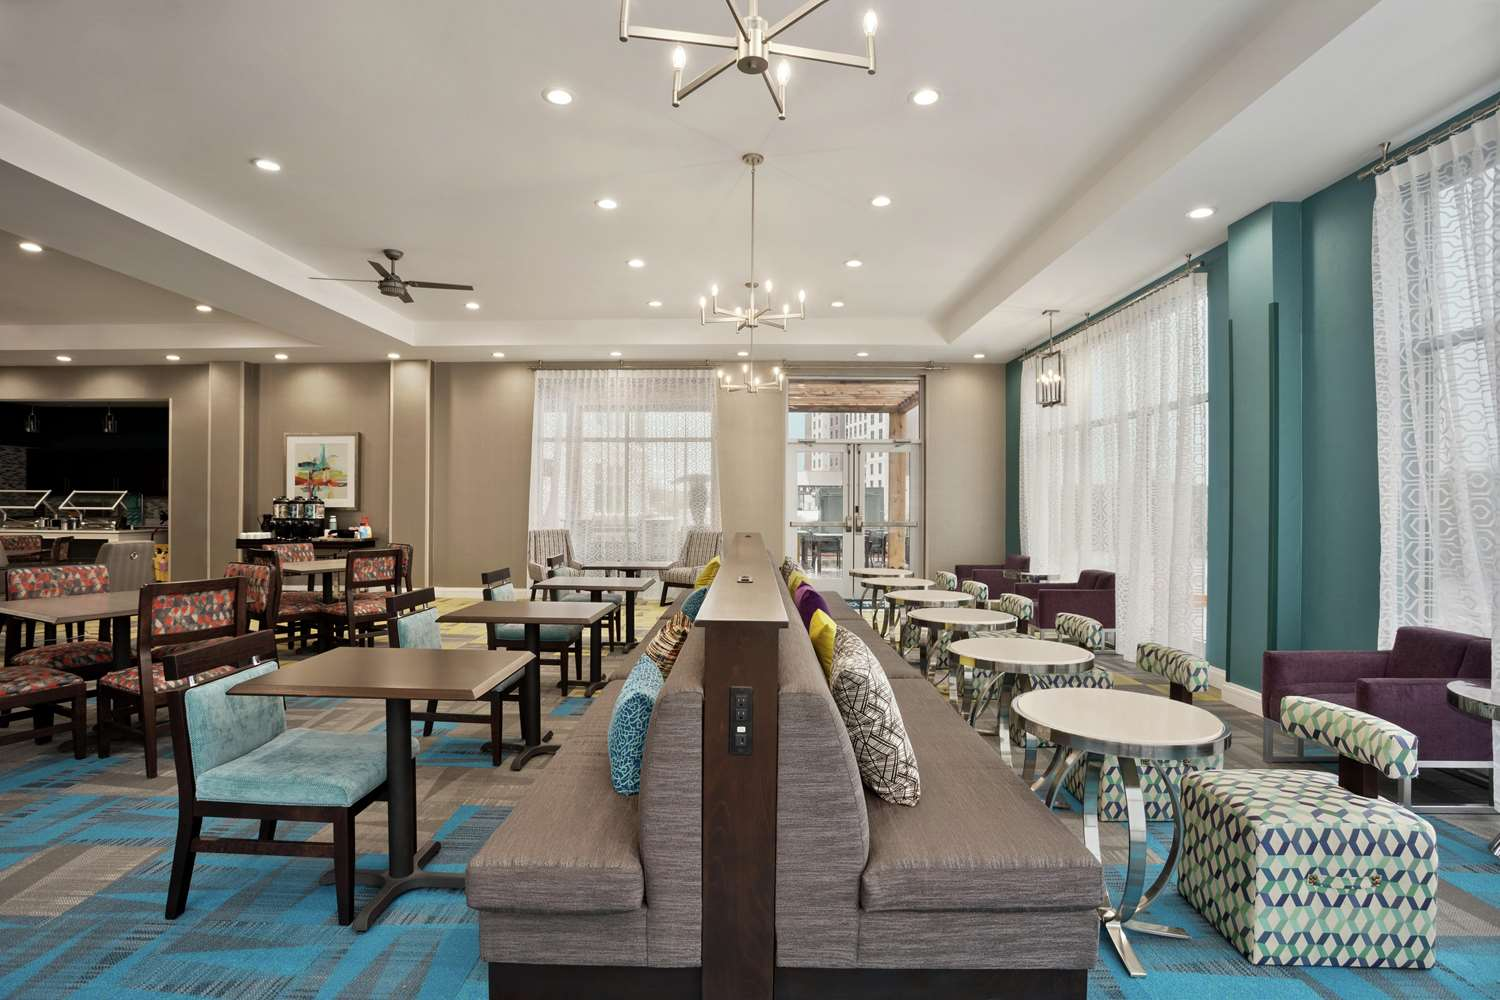 Restaurant - Homewood Suites by Hilton Civic Center Florence